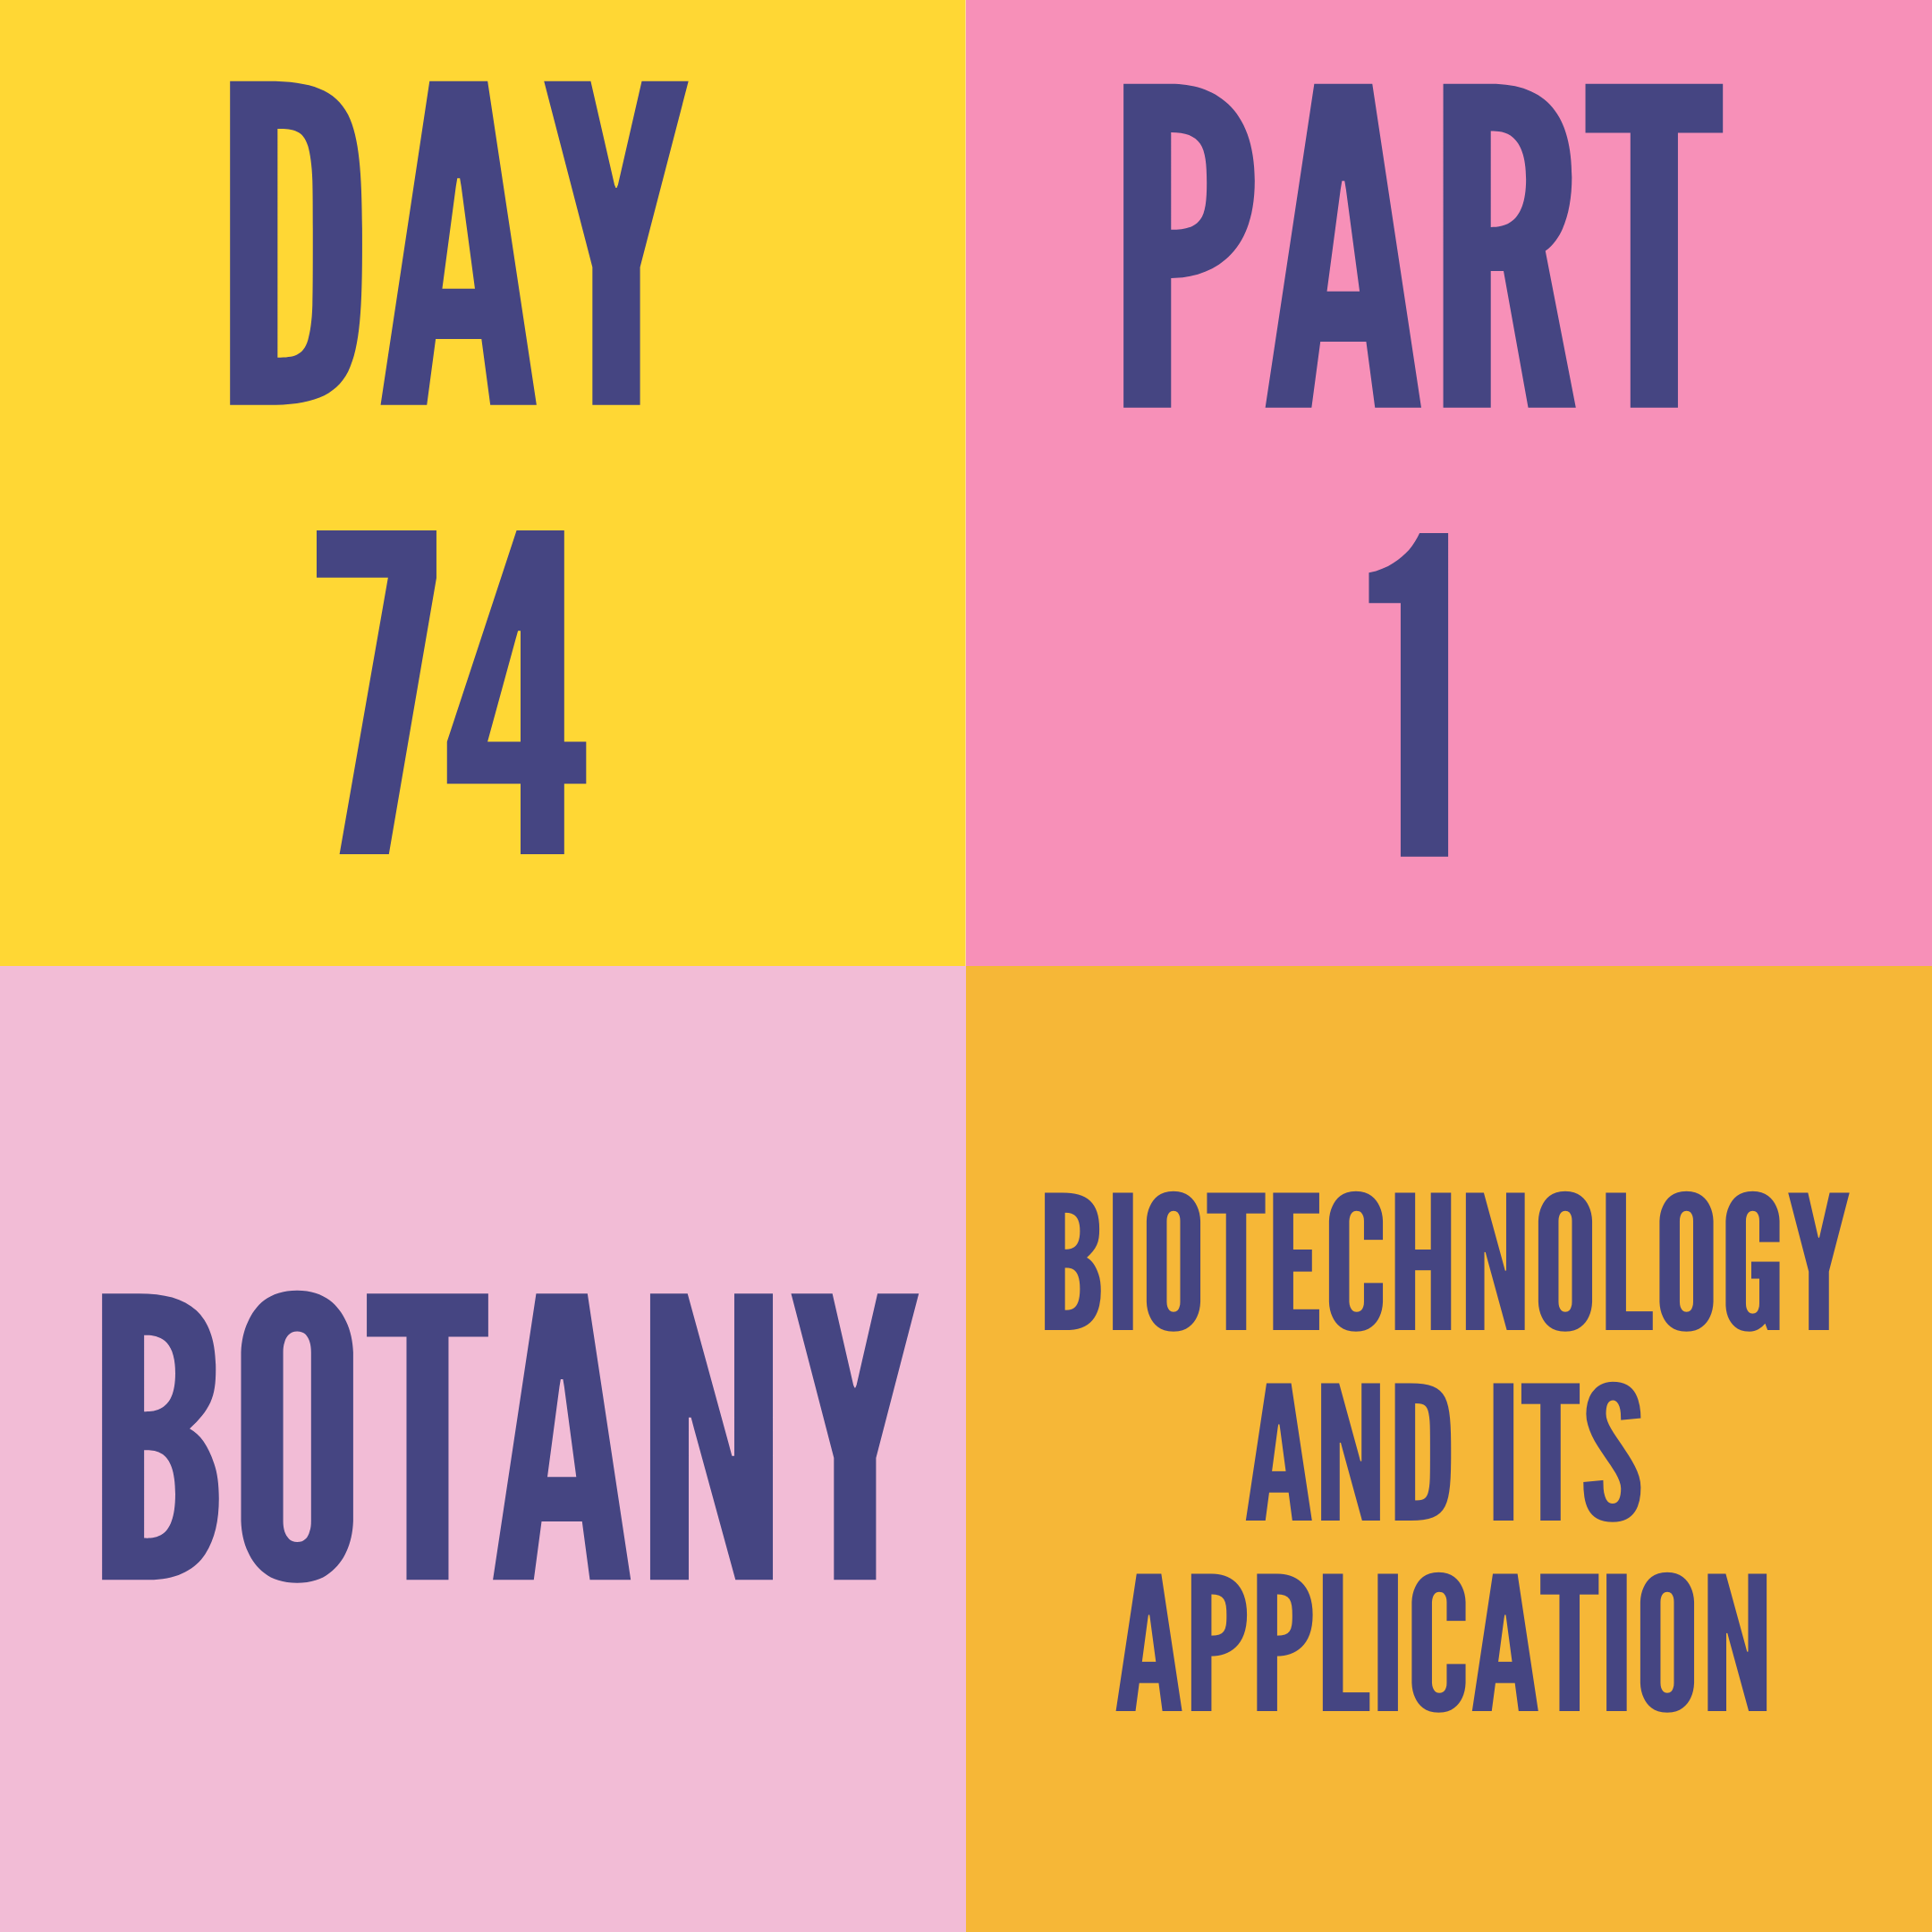 DAY-74 PART-1 BIOTECHNOLOGY AND ITS APPLICATION